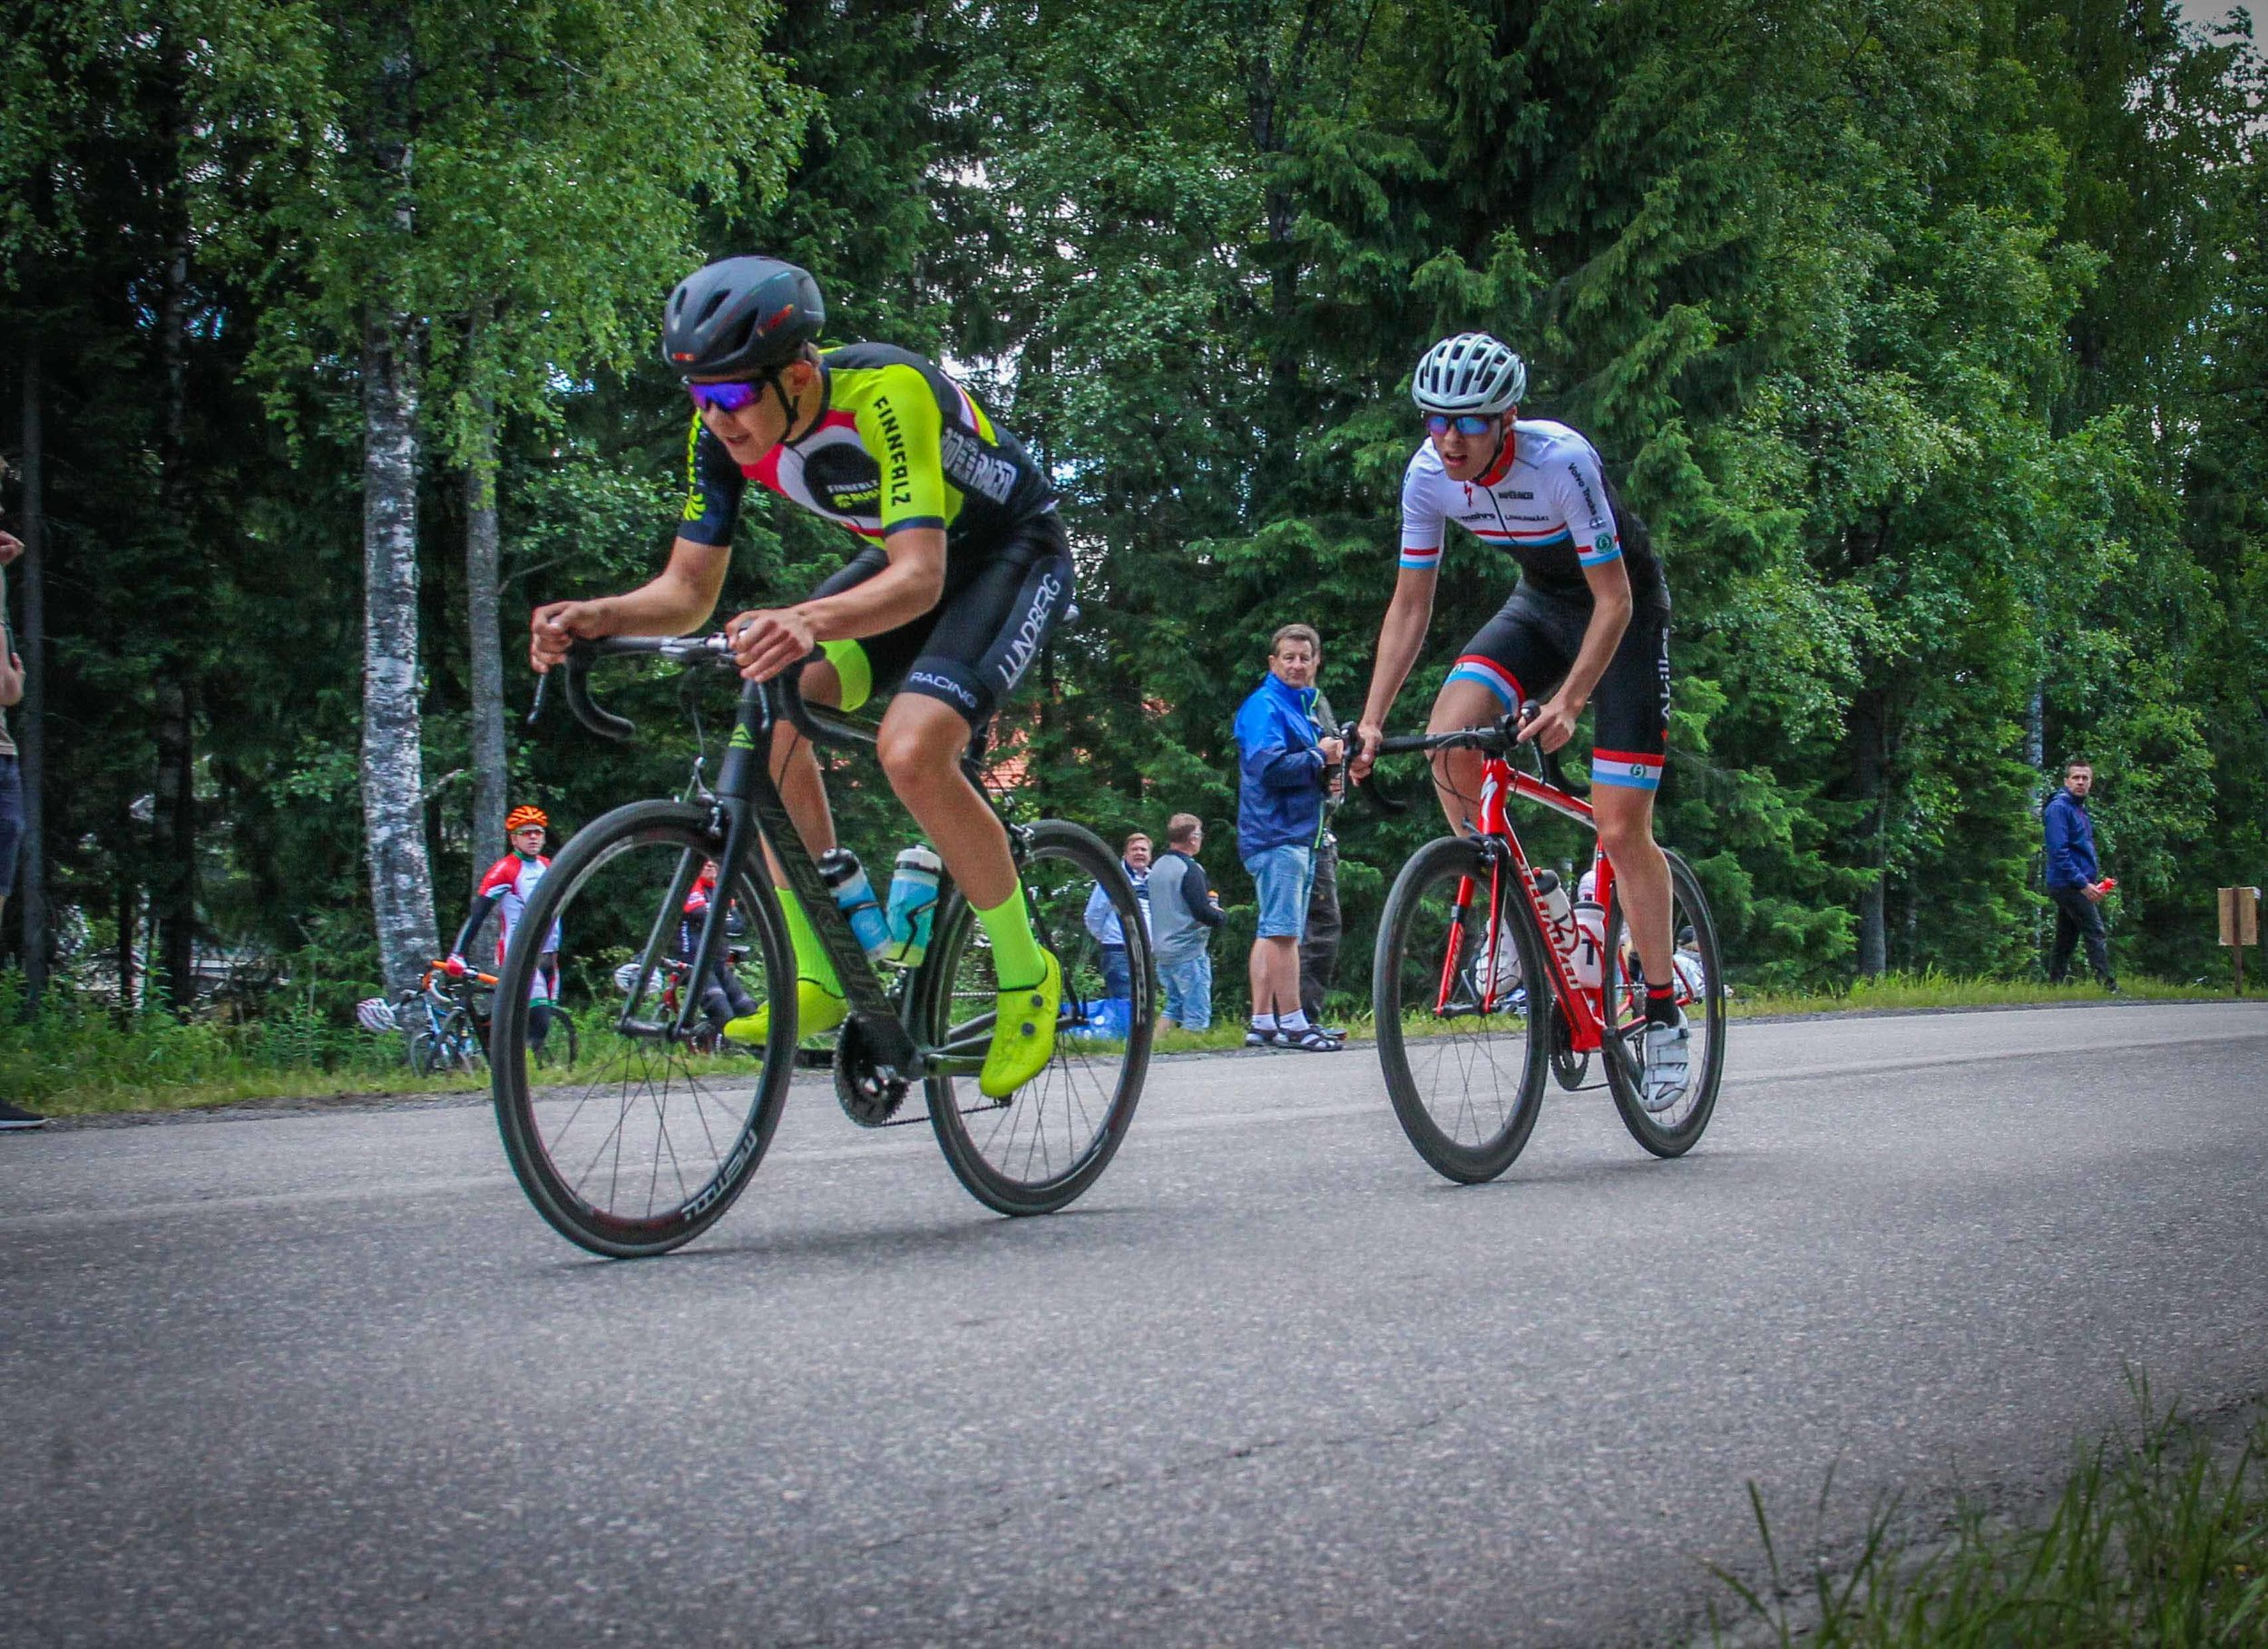 Finnish National Road Race Championships 2018 - Men's junior road race